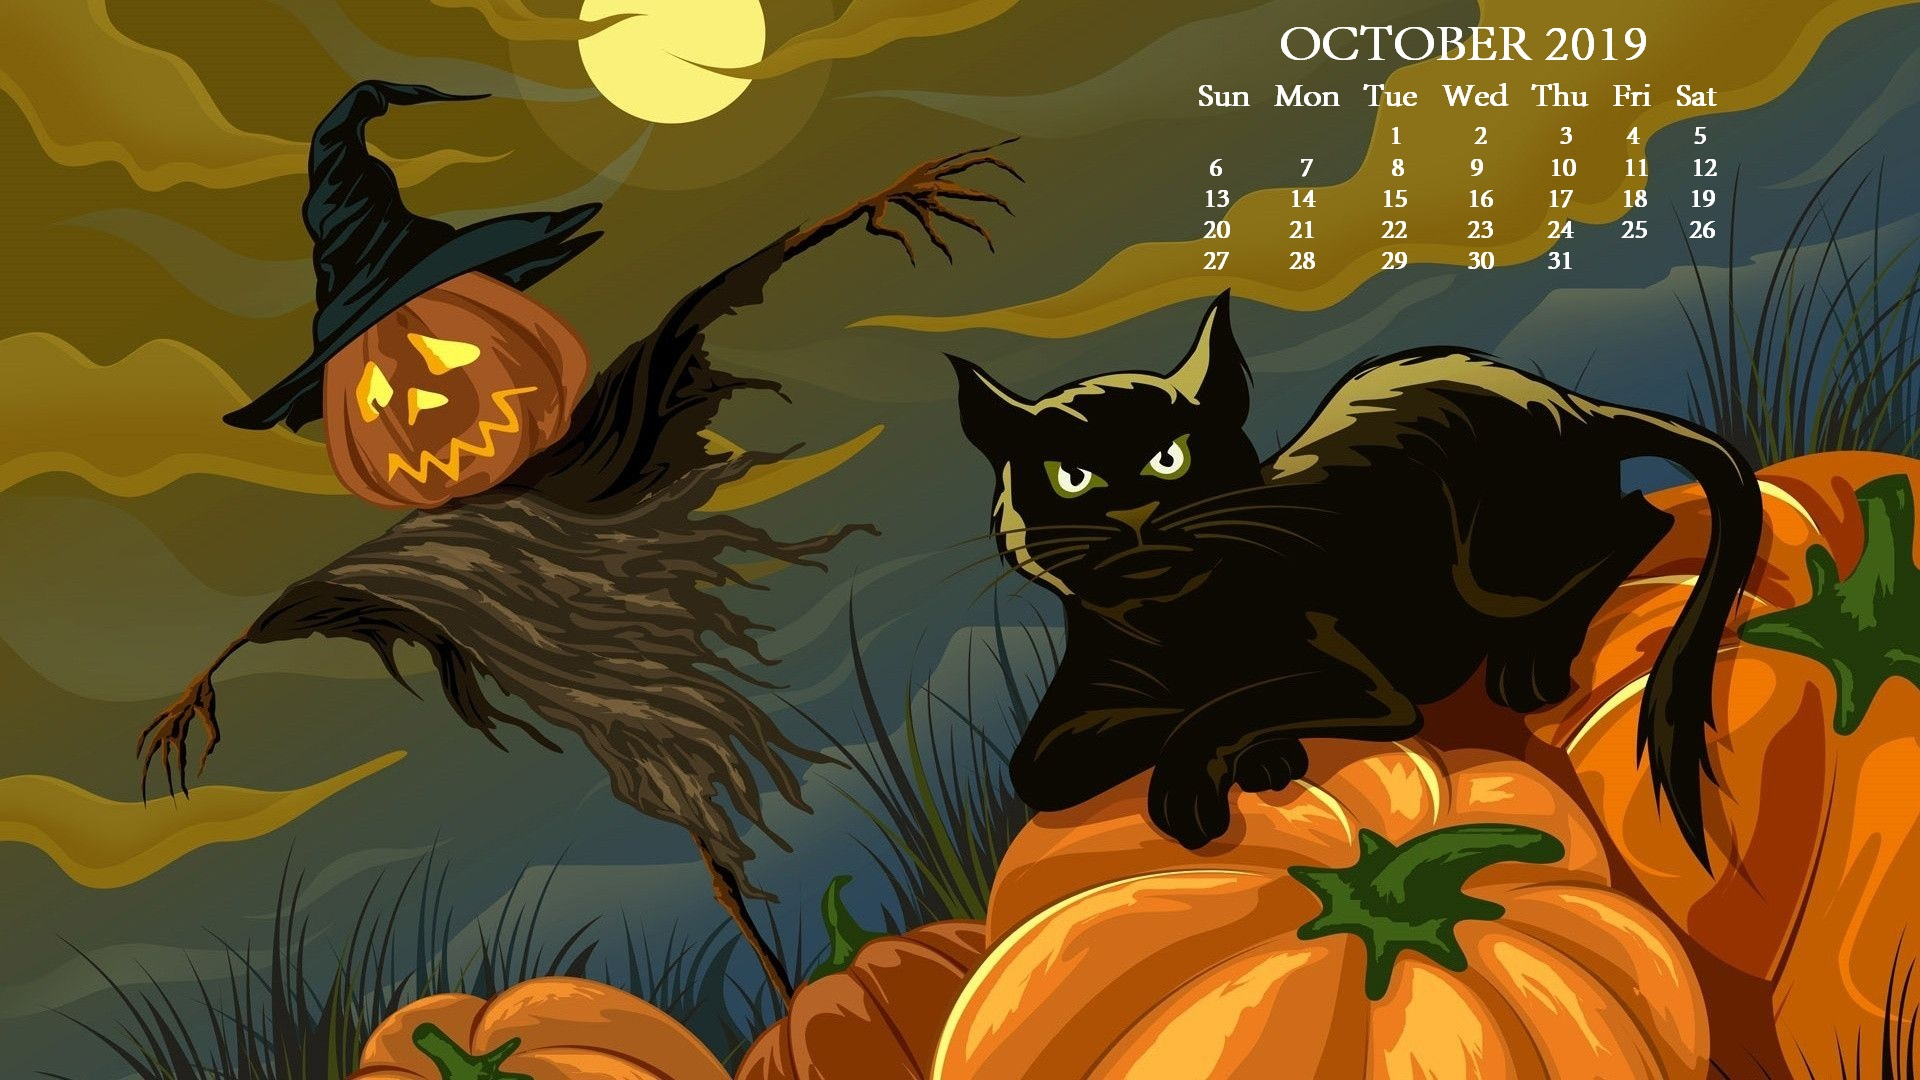 October 2019 HD Desktop Calendar Wallpaper